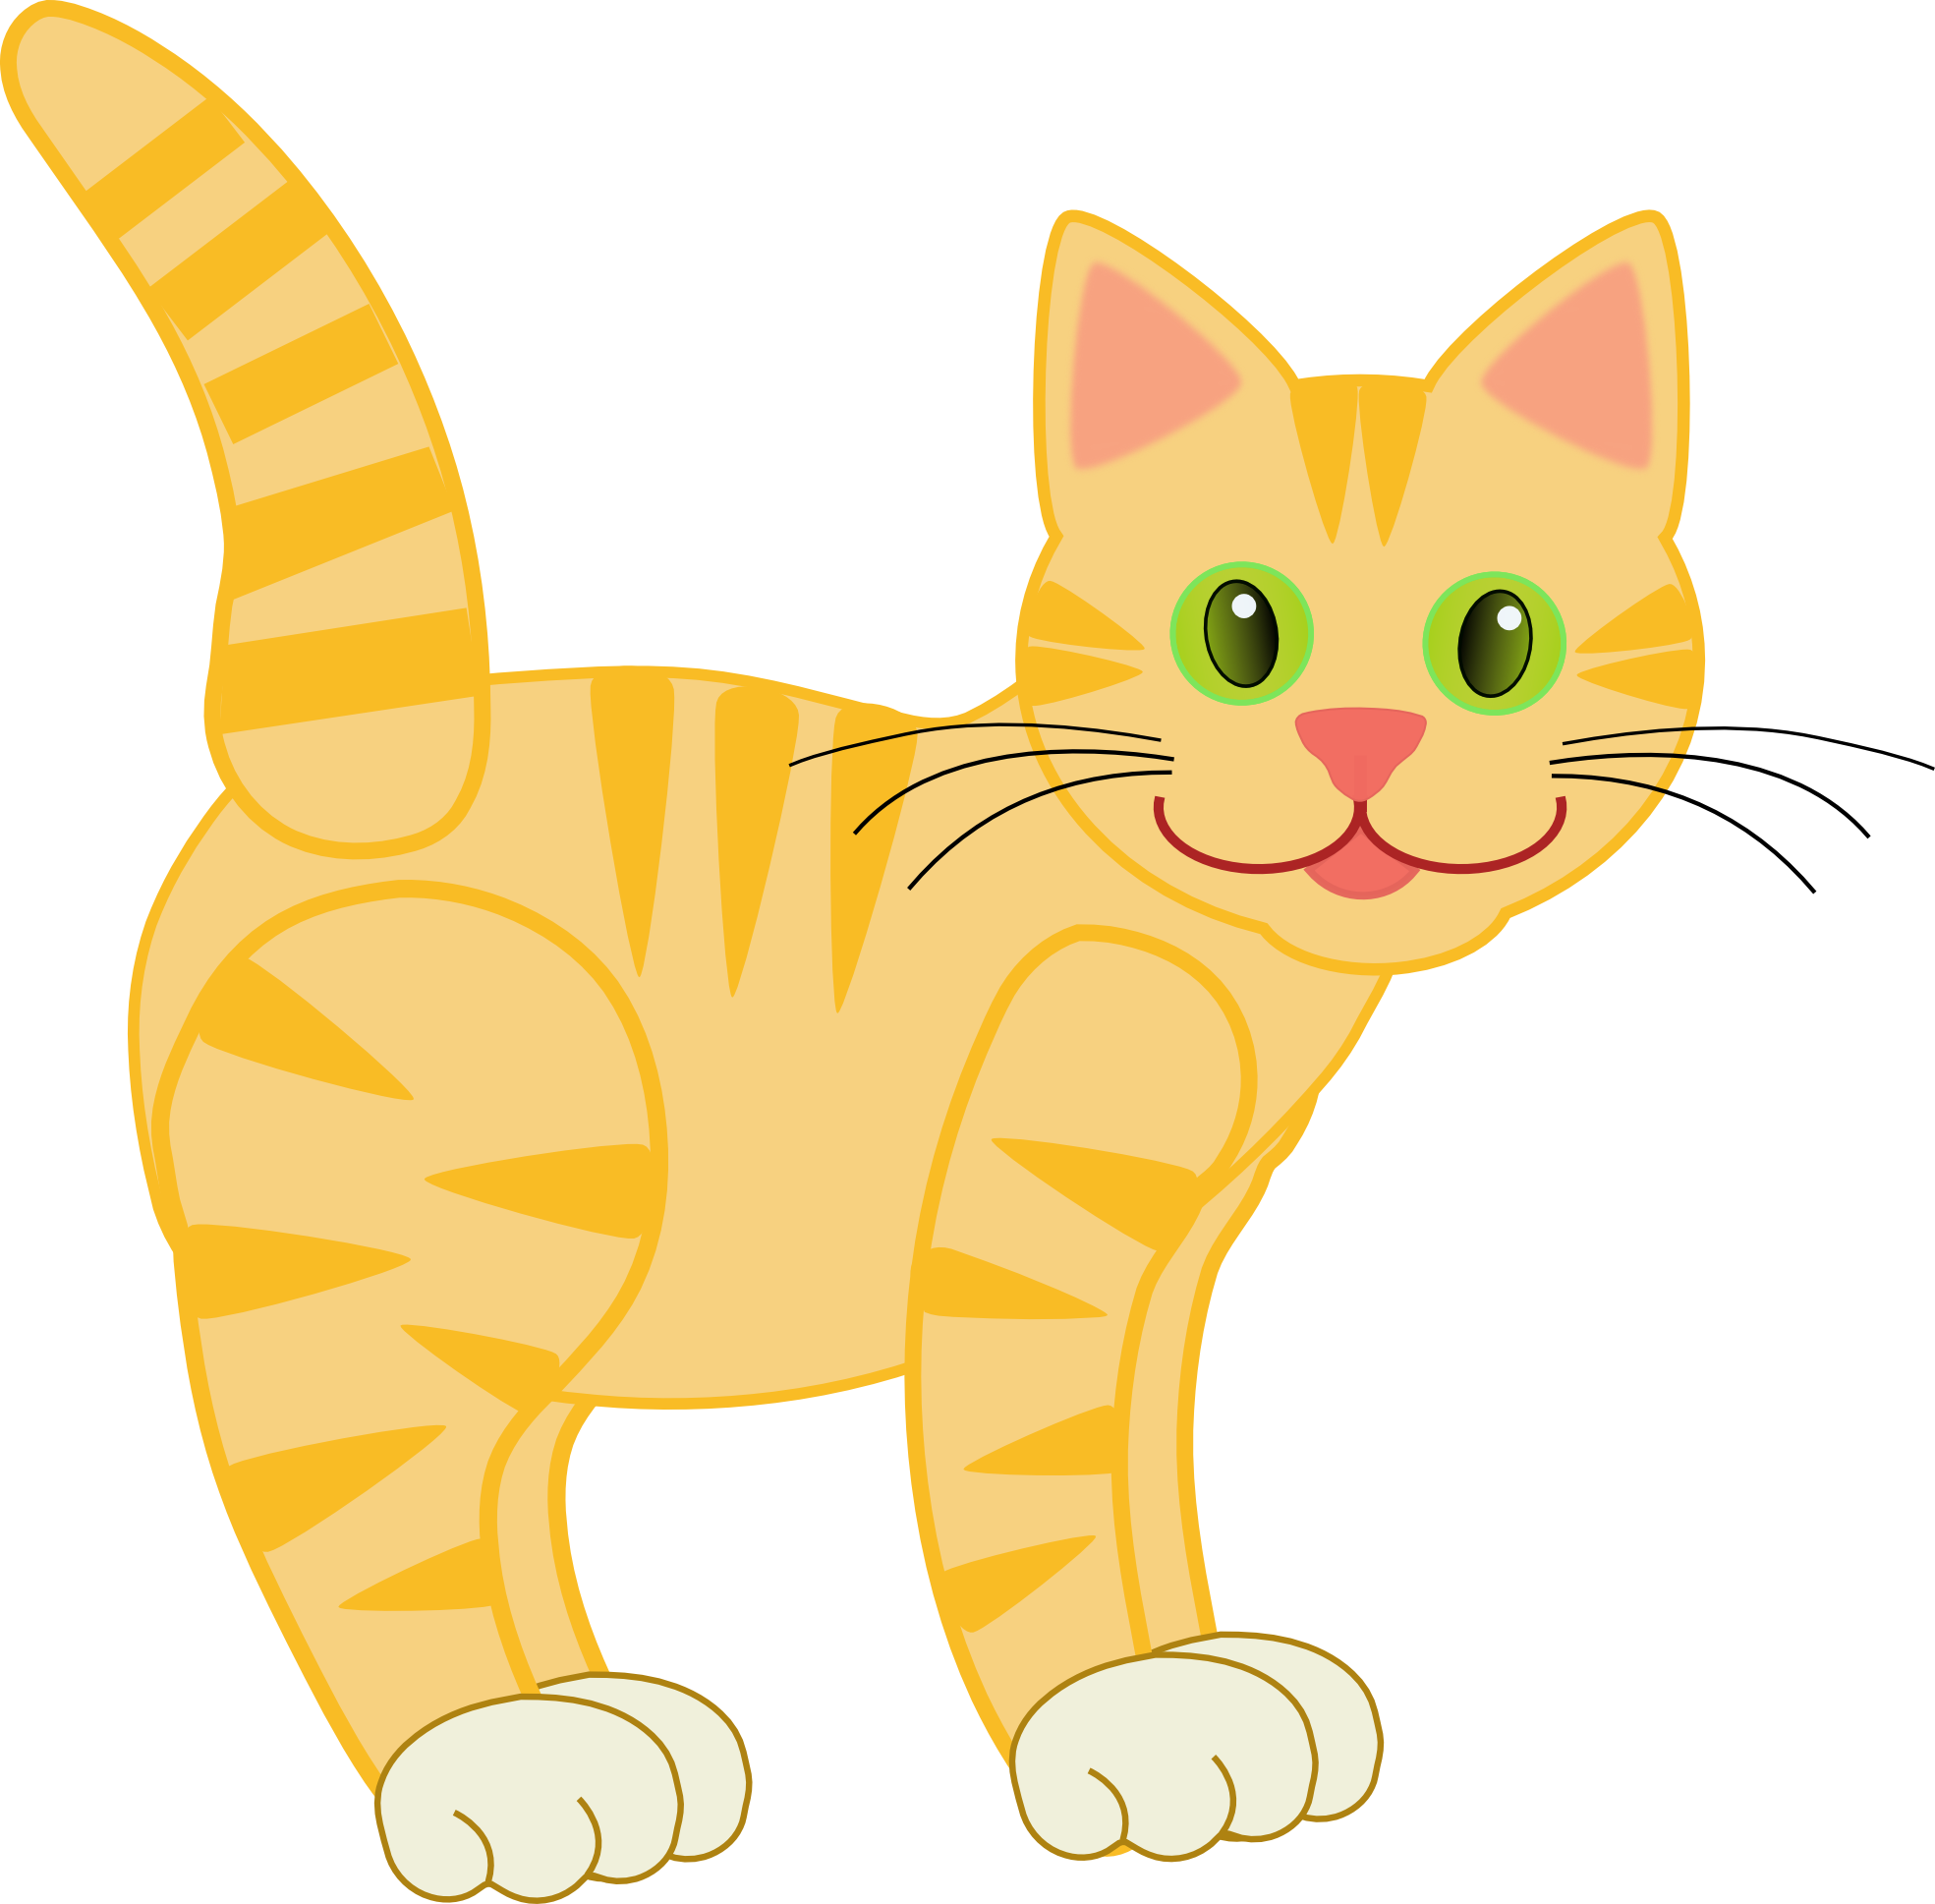 Orange cat face clipart clip art free download Clip art version2 yellow tiger cat | 15.10.8 | Pinterest | Clip art ... clip art free download